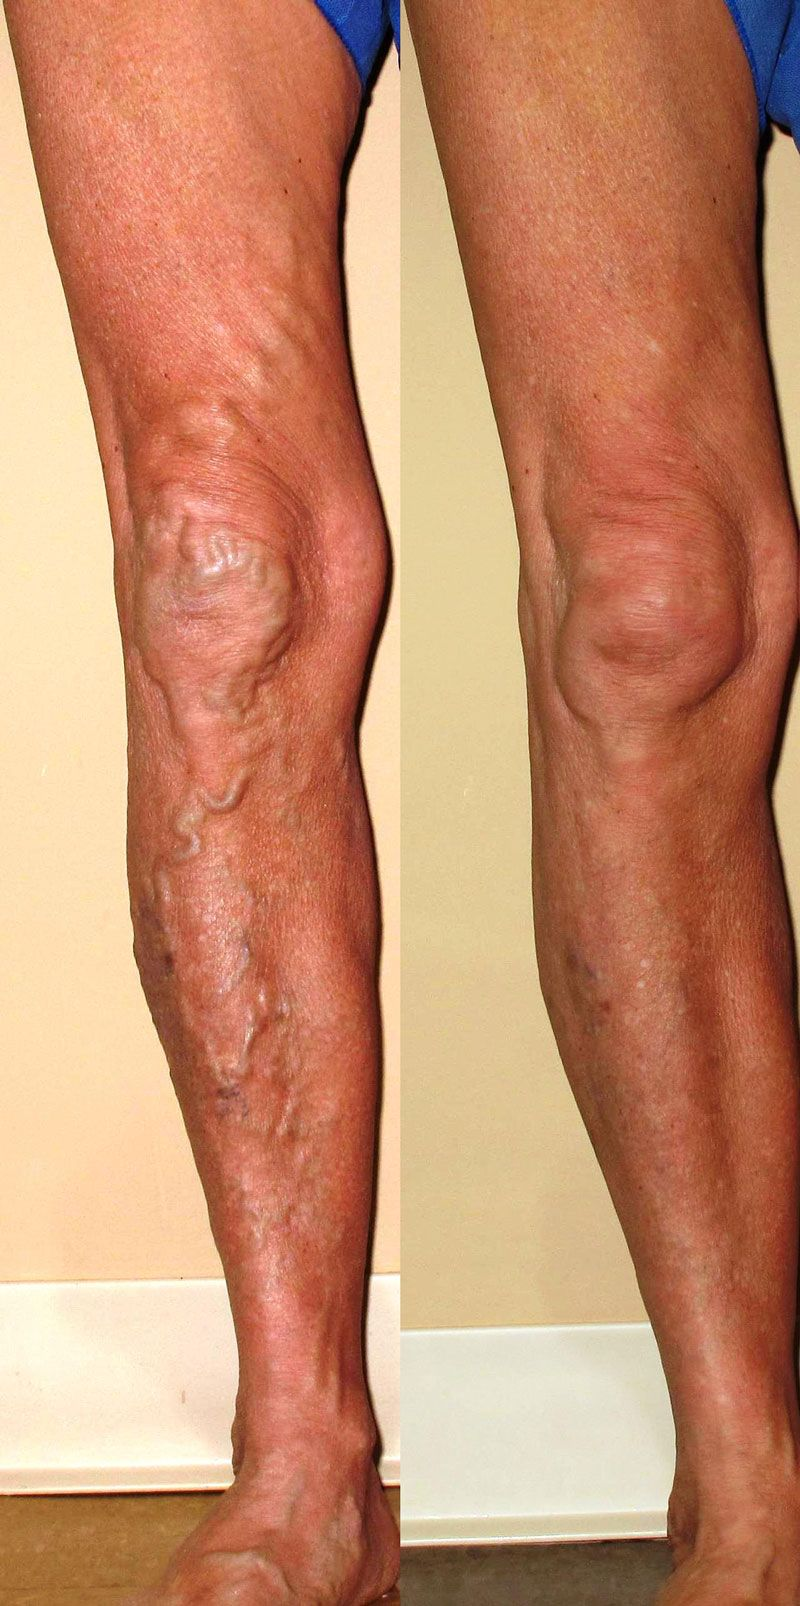 Before & After Varicose Veins | Varicose veins, Varicose ...